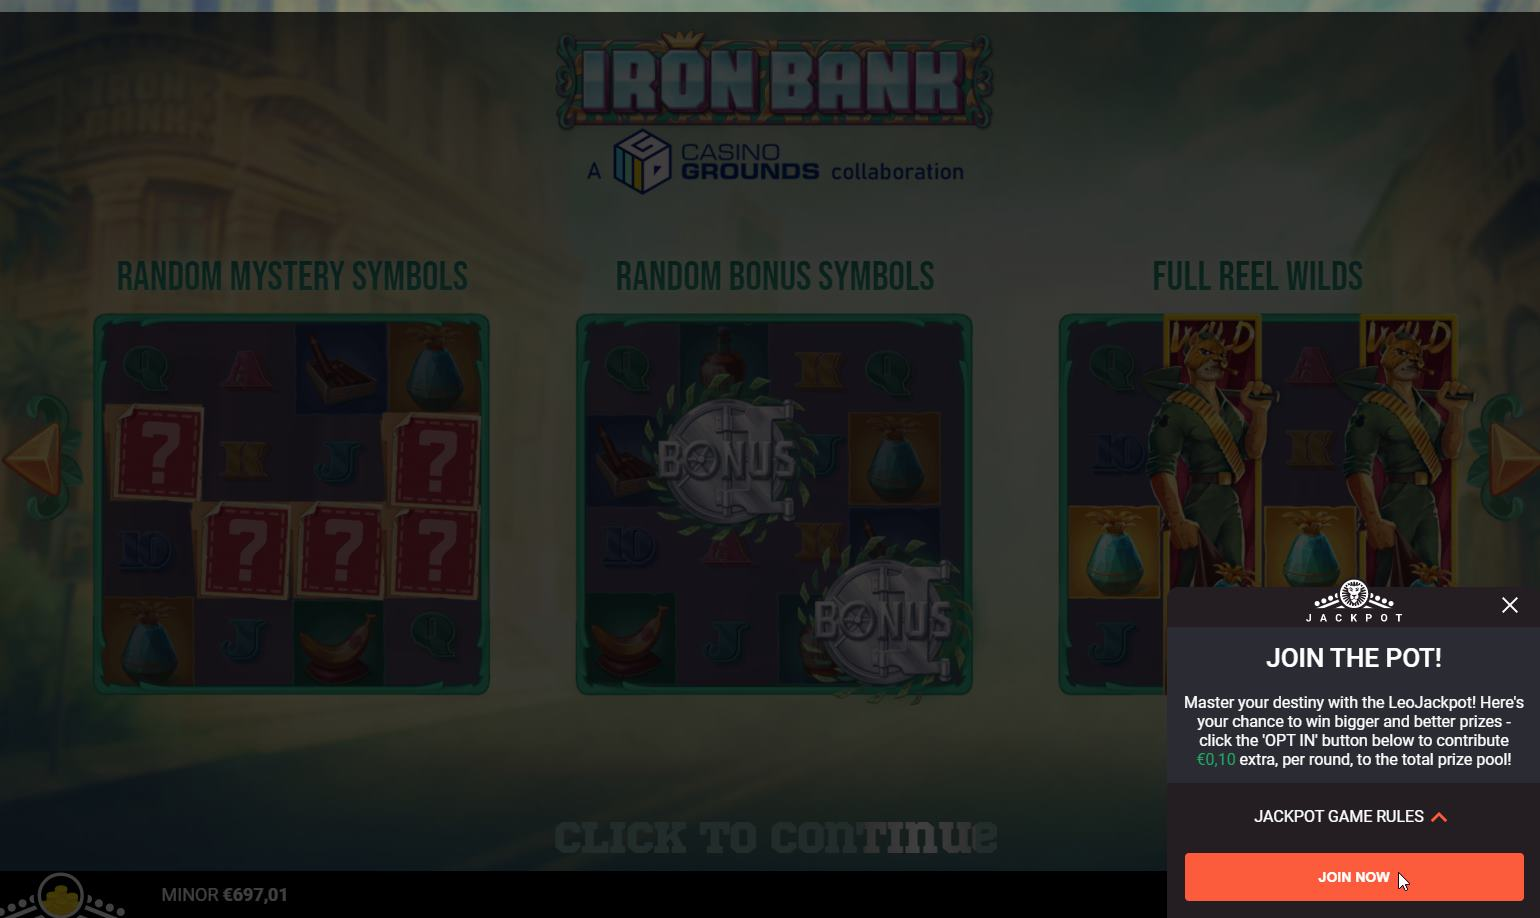 LeoJackpots Opting in during gameplay on Iron BAnk